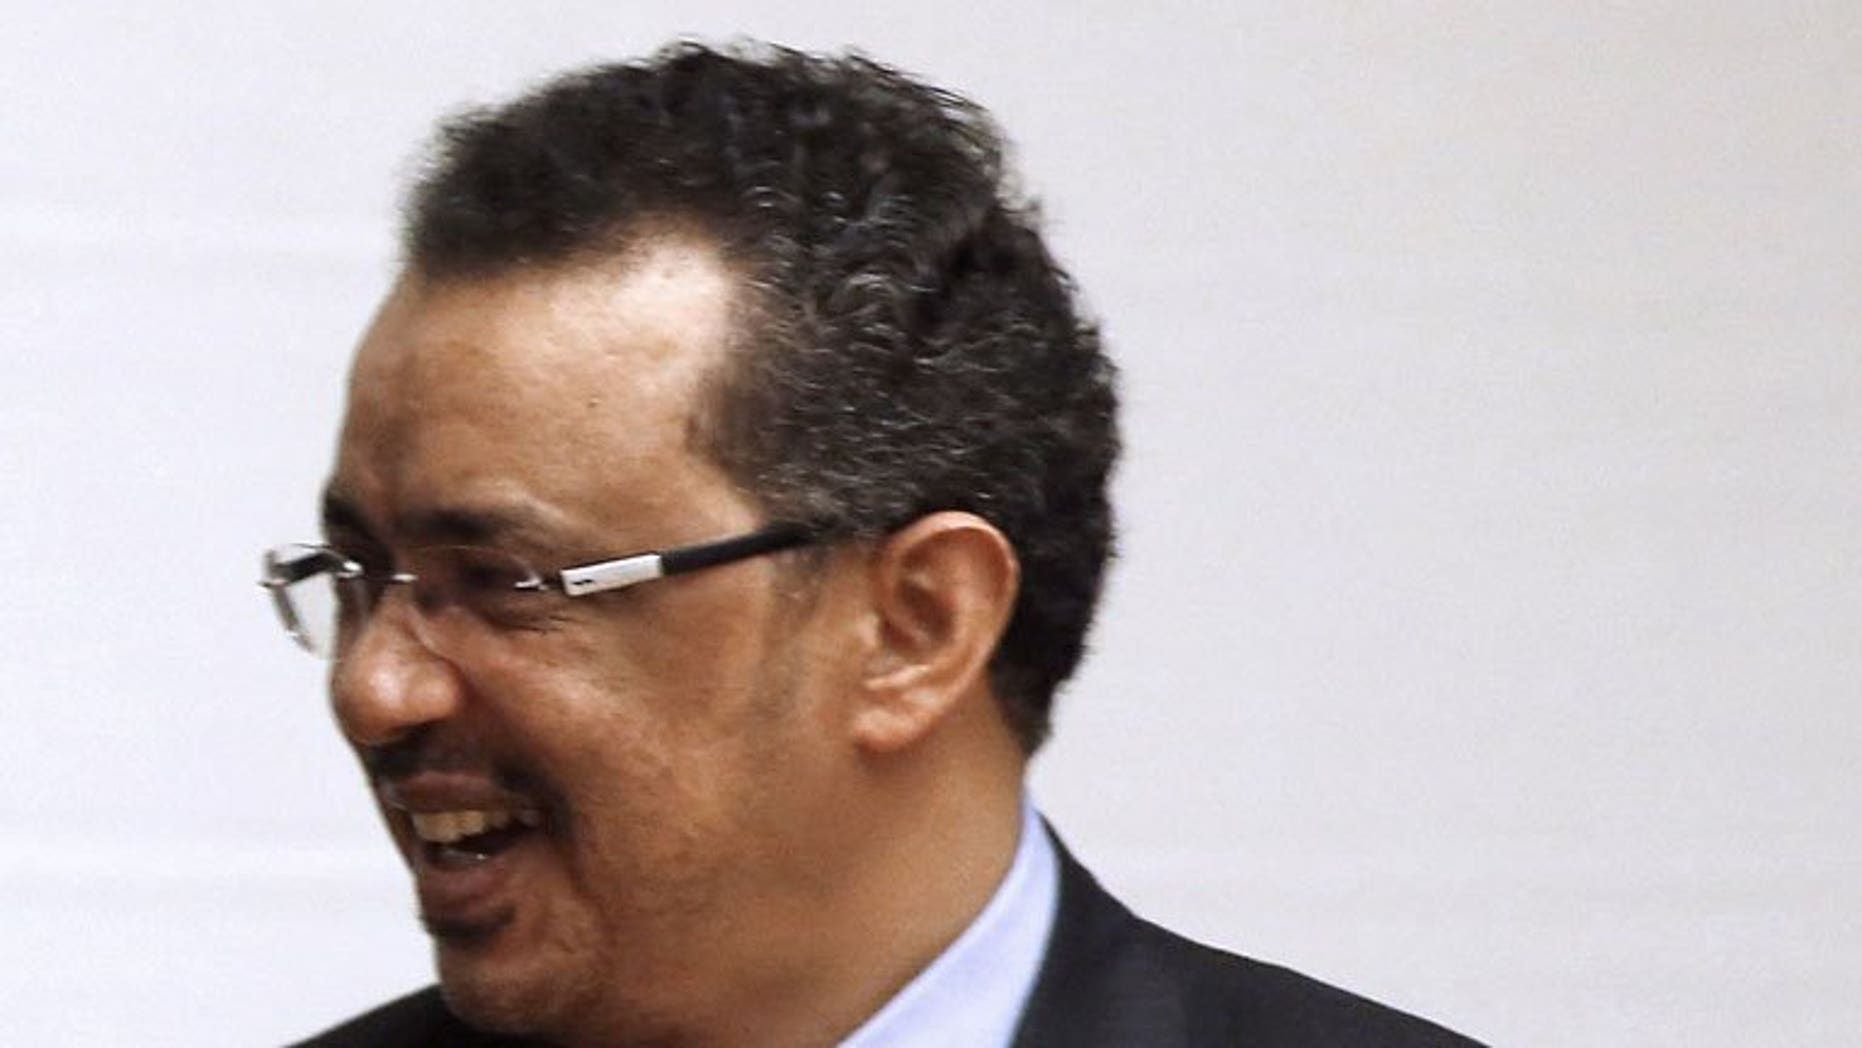 Ethiopian Foreign Foreign Minister Tedros Adhanom is pictured in Addis Ababa, on May 25, 2013. Ethiopia is hoping that talks with Egypt will ease a row over sharing the waters of the Nile, Adhanom said on Sunday during a trip to Algeria.